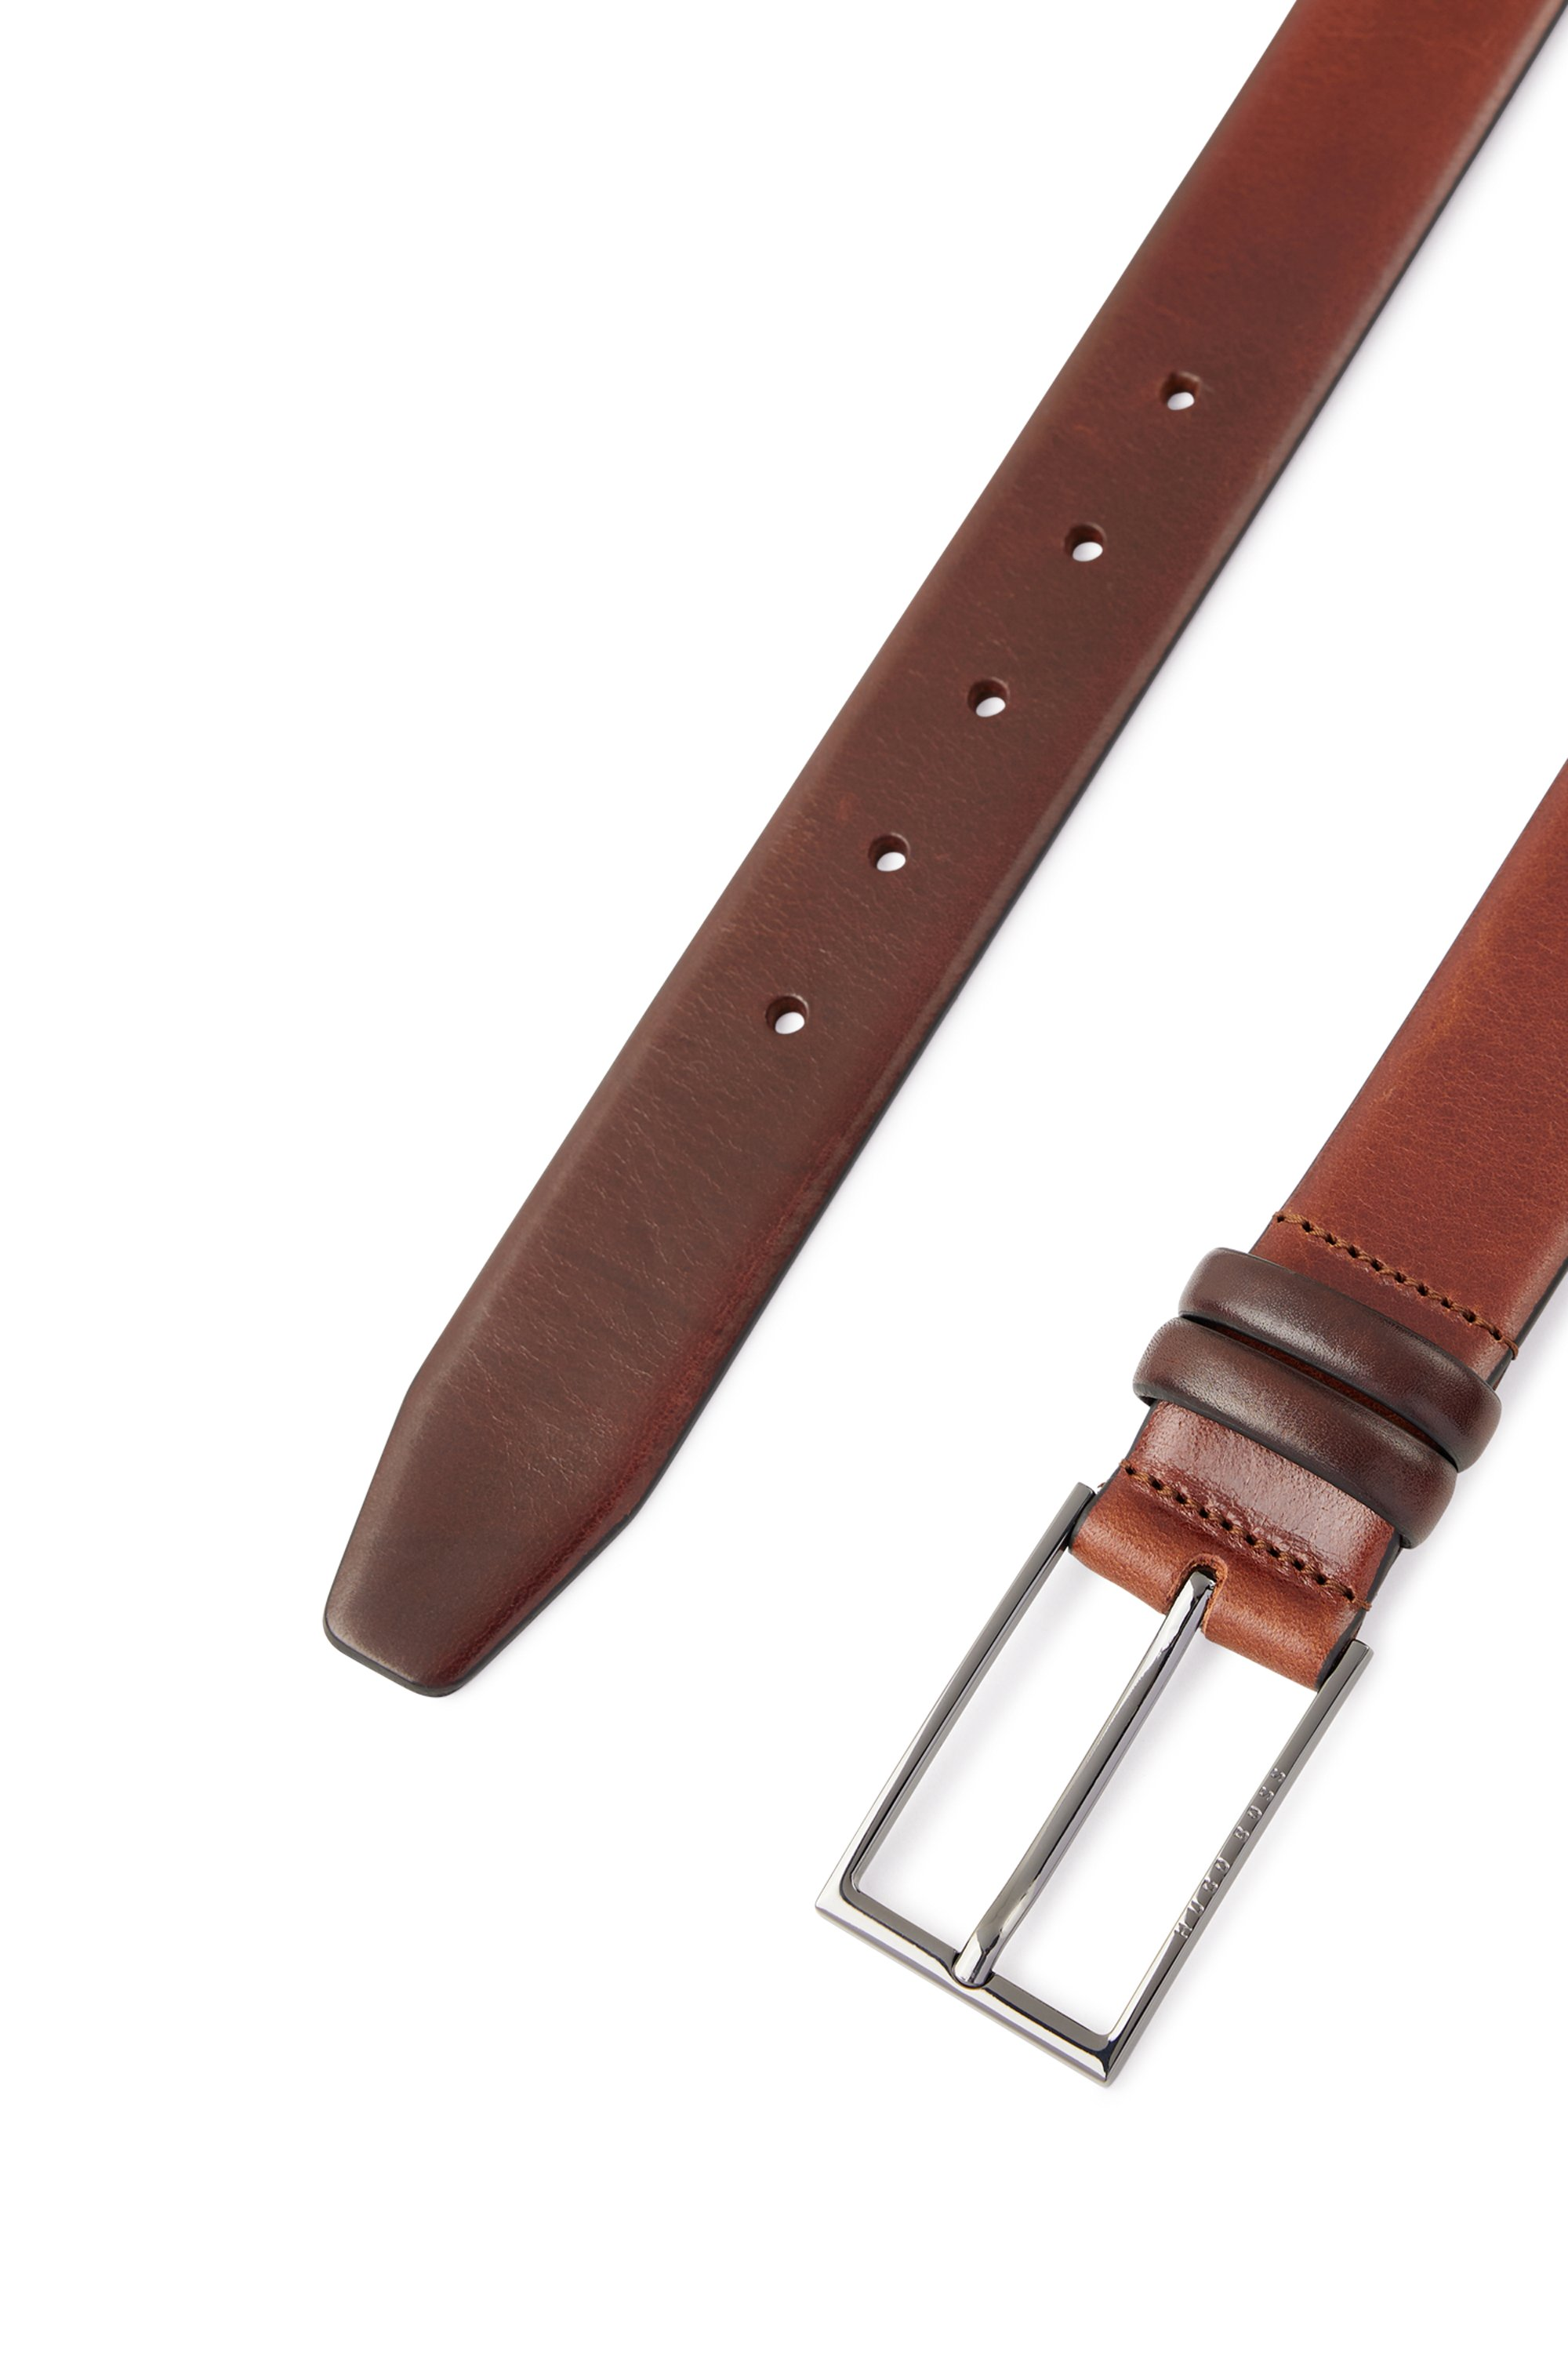 Vegetable-tanned leather belt with gunmetal hardware